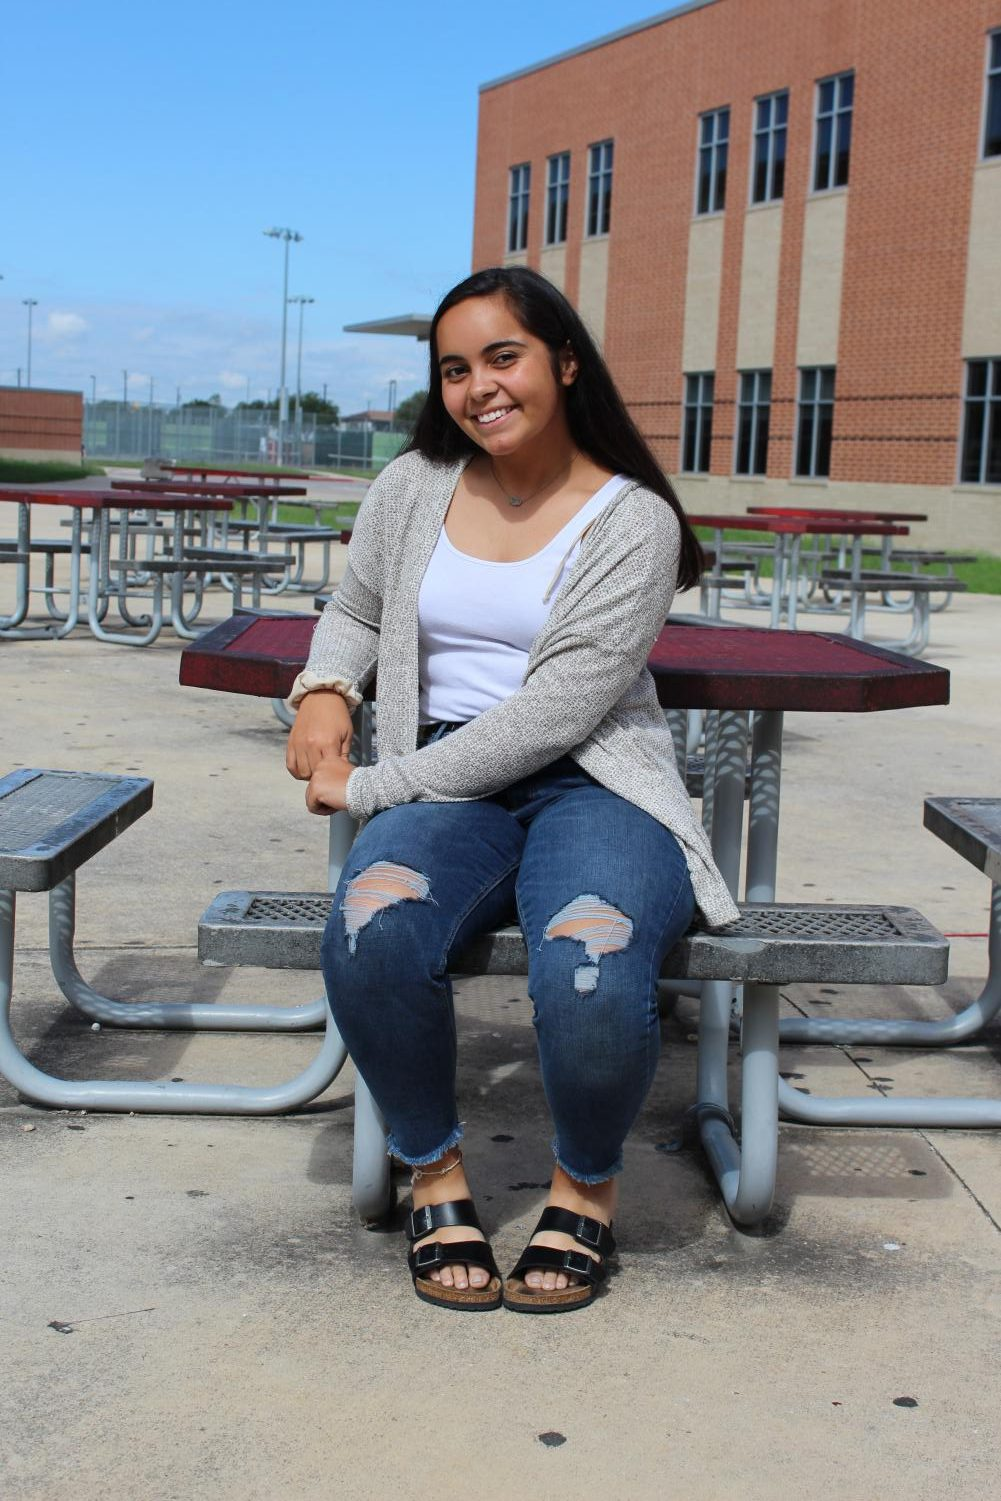 Senior Tejas Fruean shares a smile after being awarded Class President. Fruean also holds the leadership positions of Band President, Drum Major, and NHS Historian.